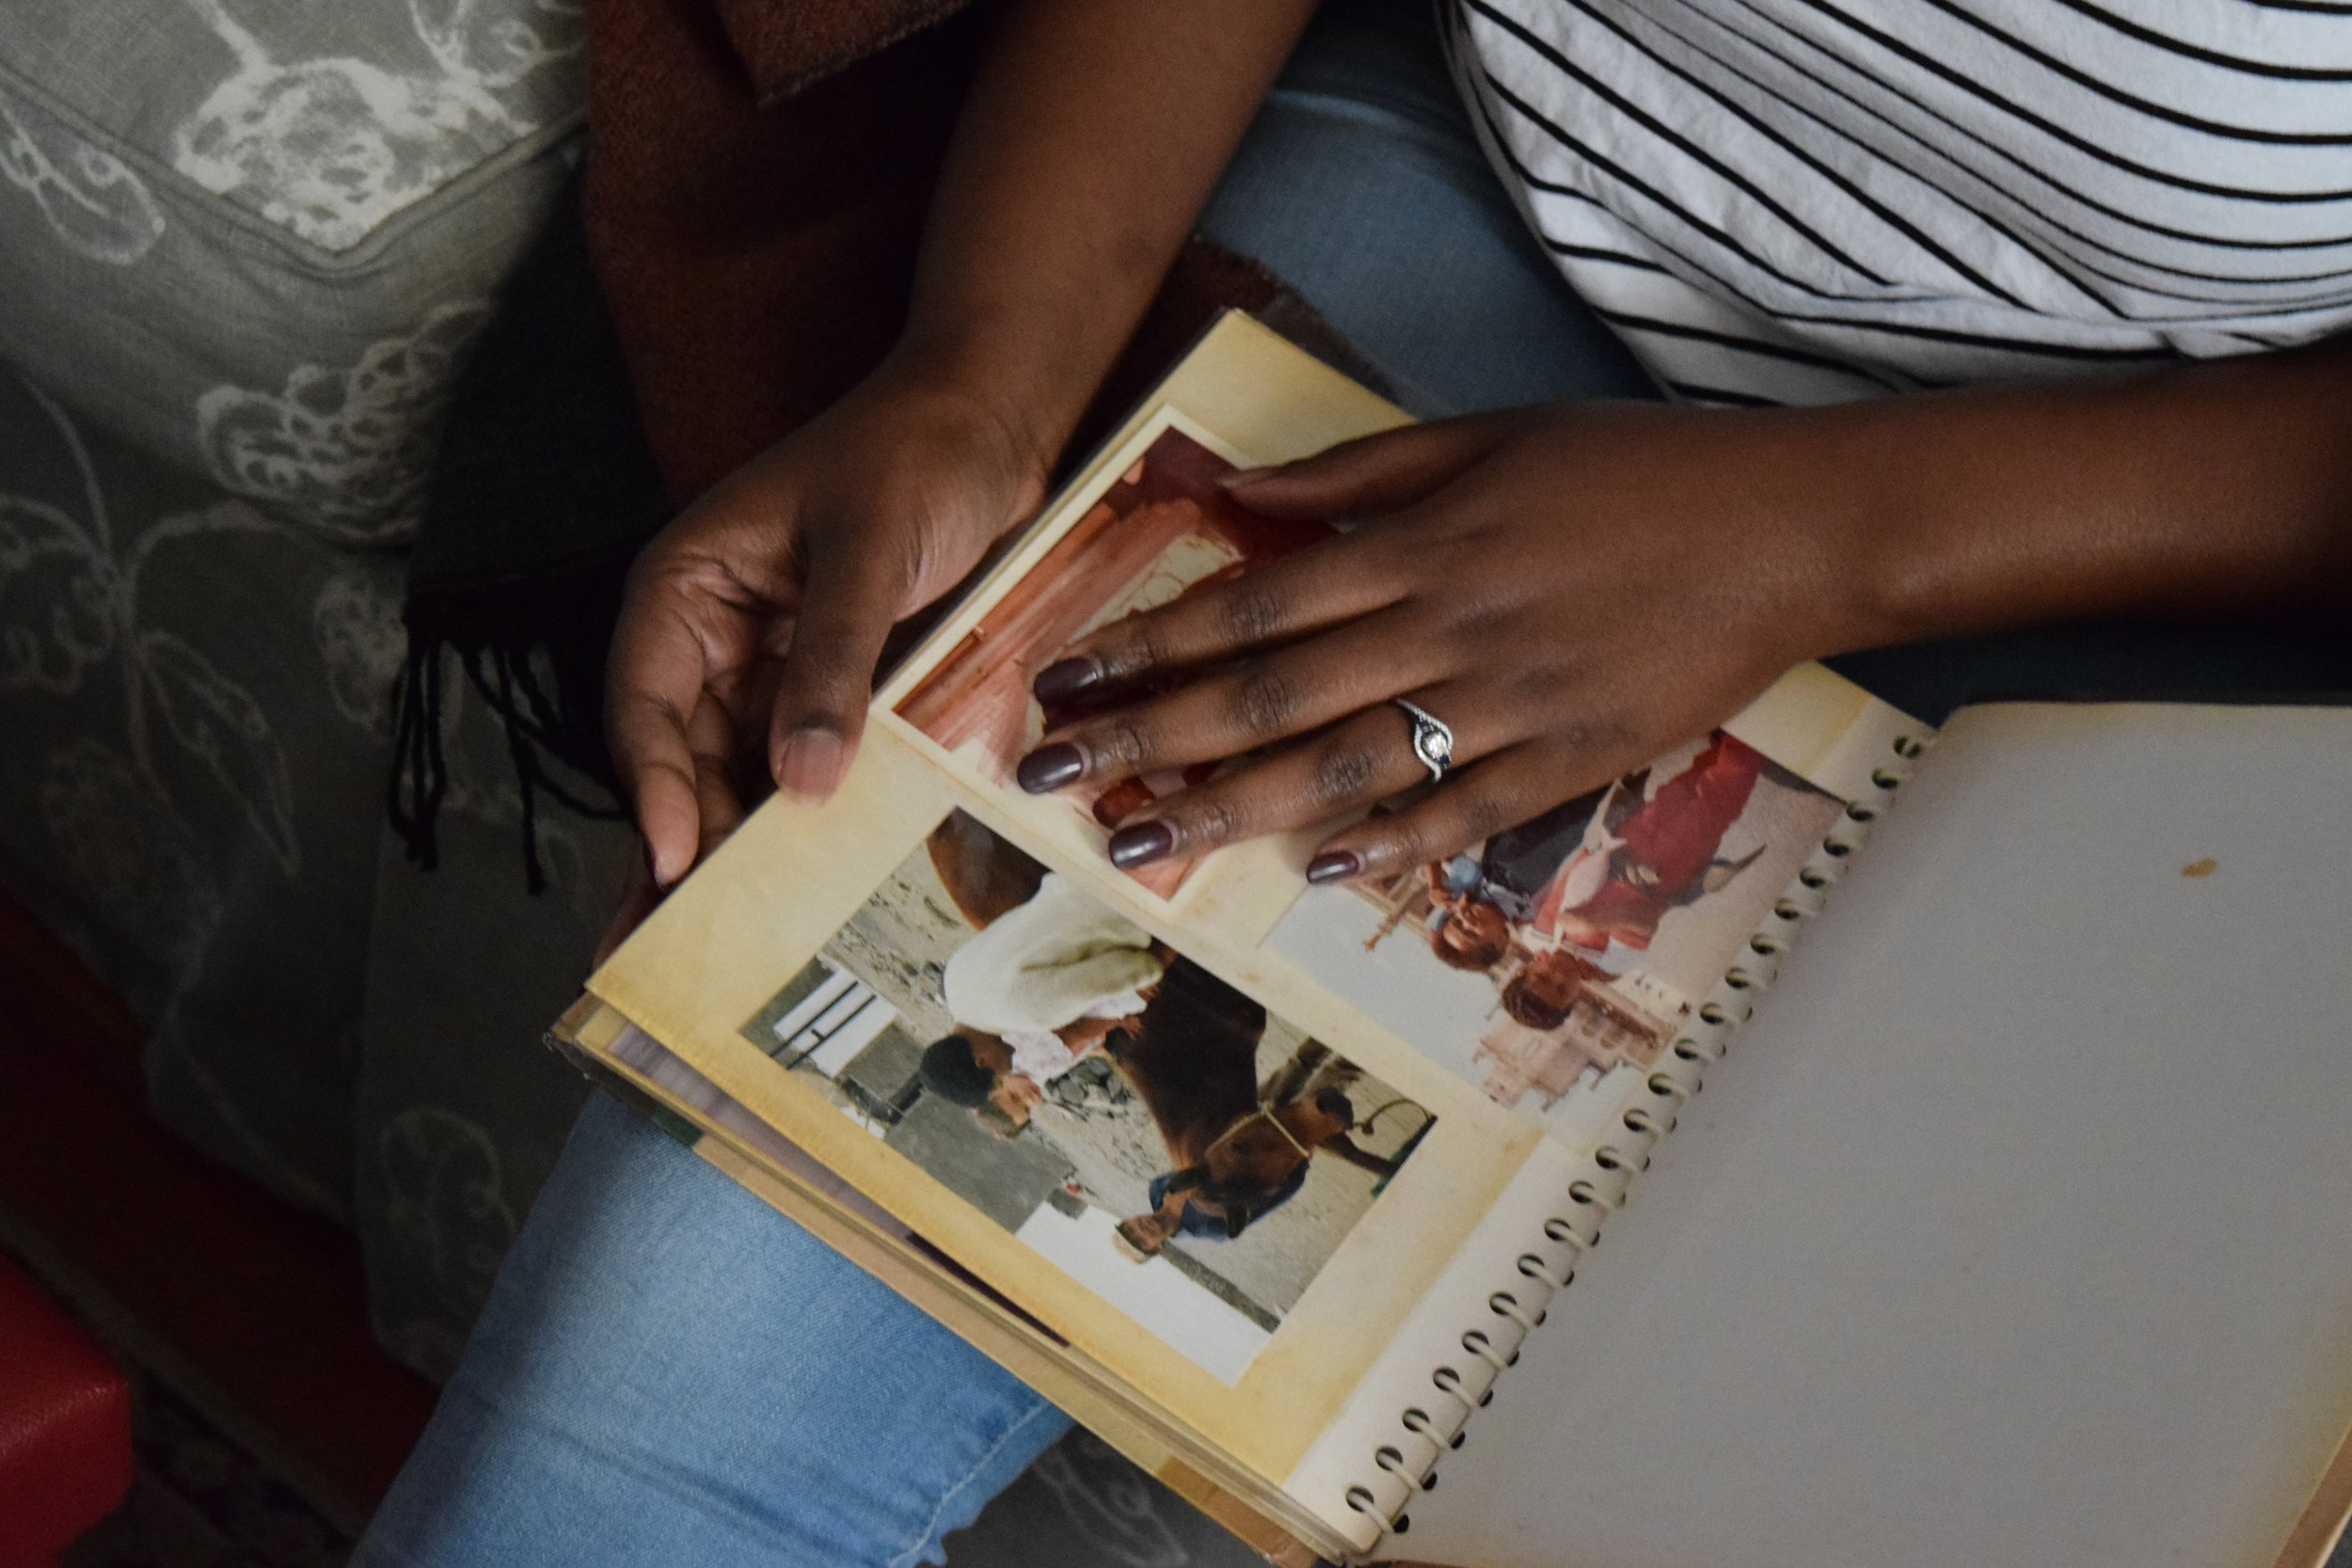 CSSJ Manager of Outreach and Community Engagement Maiyah Gamble-Rivers looks through a family photo album during an oral history session.